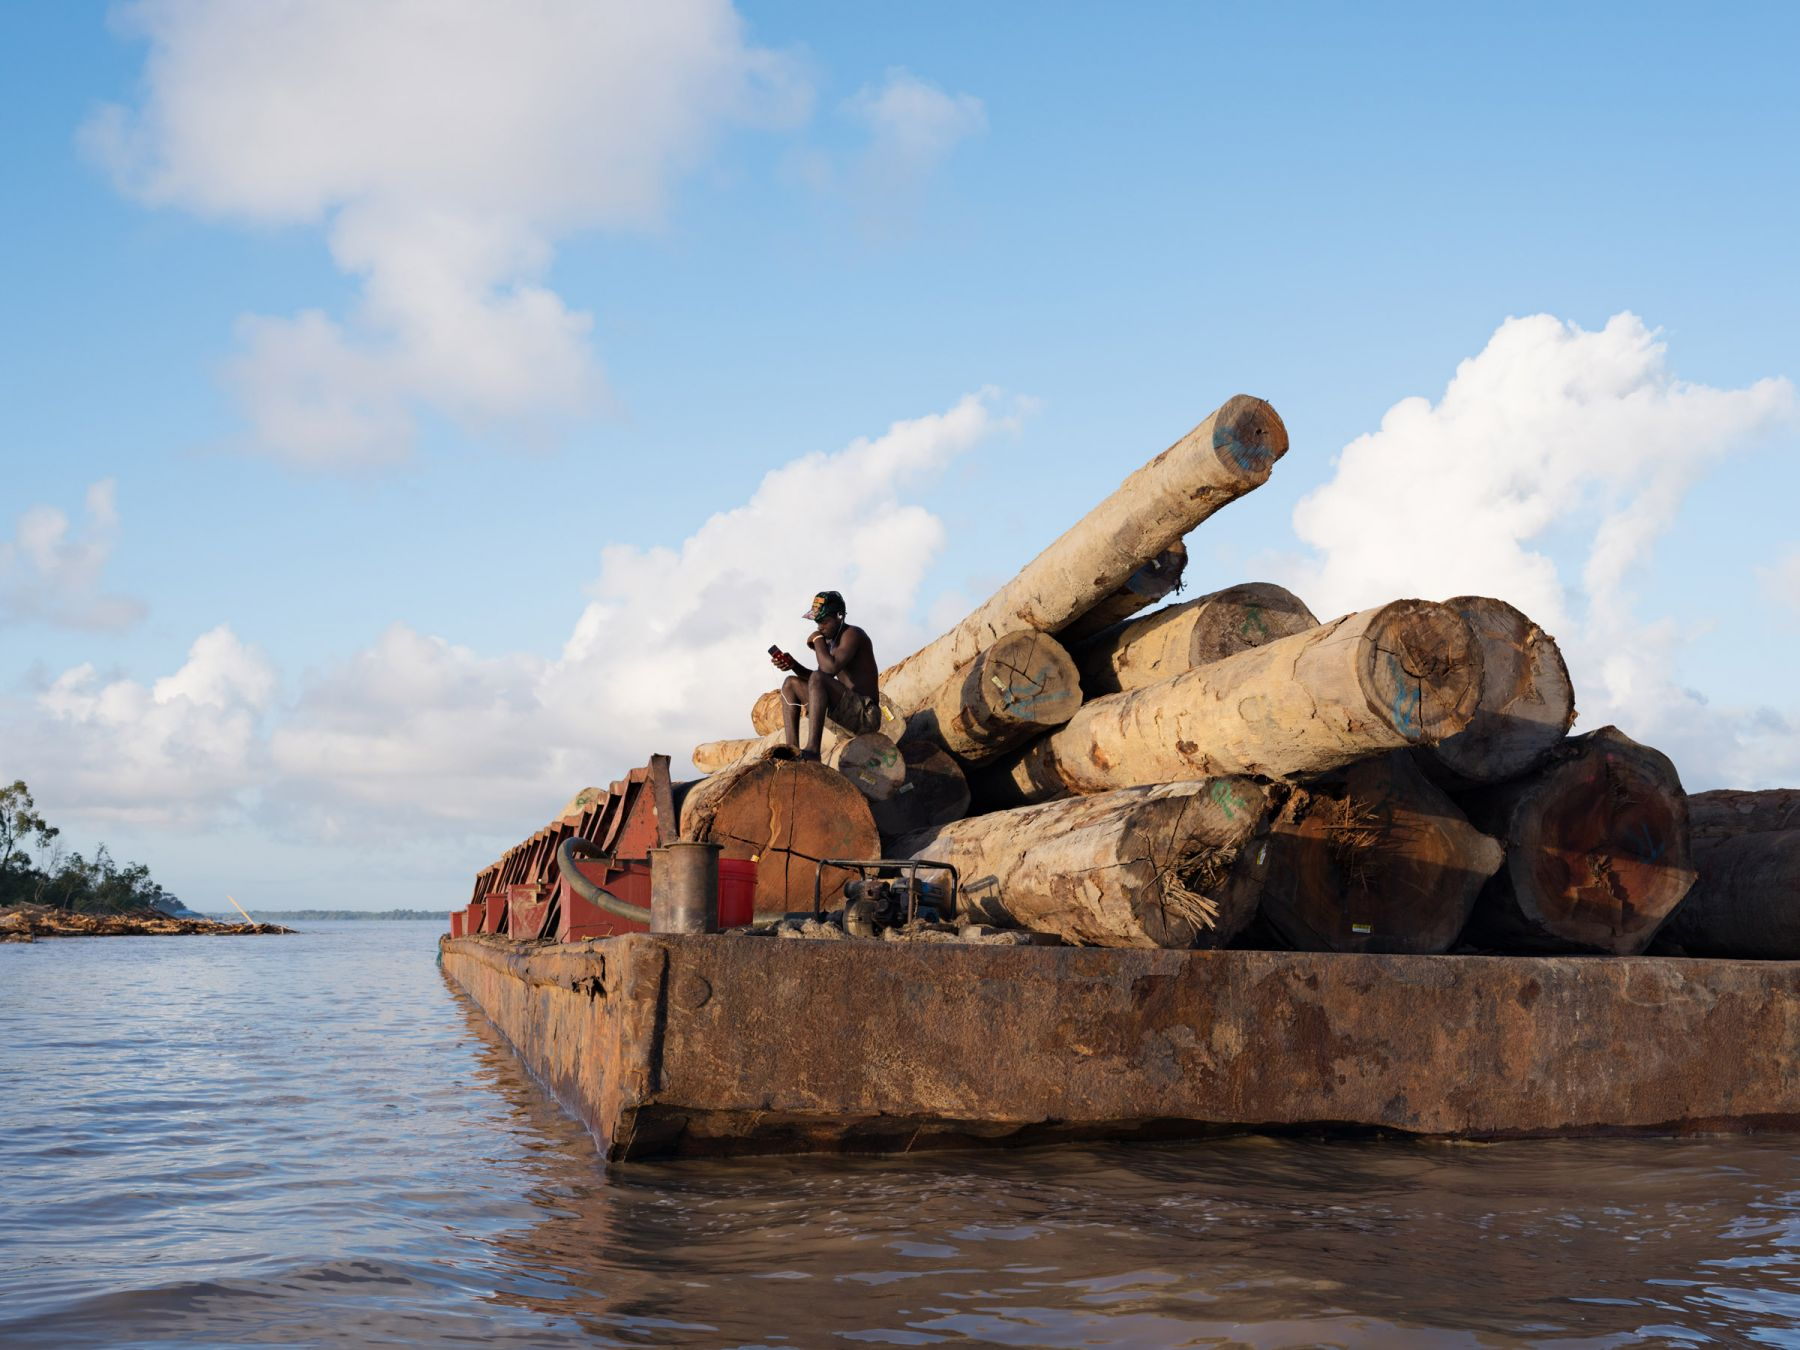 LUCAS FOGLIAKurt Guarding Logs for Export to China, Essequibo River, Guyana, 2016, Pigment Print34 x 44 inchesEdition of 8